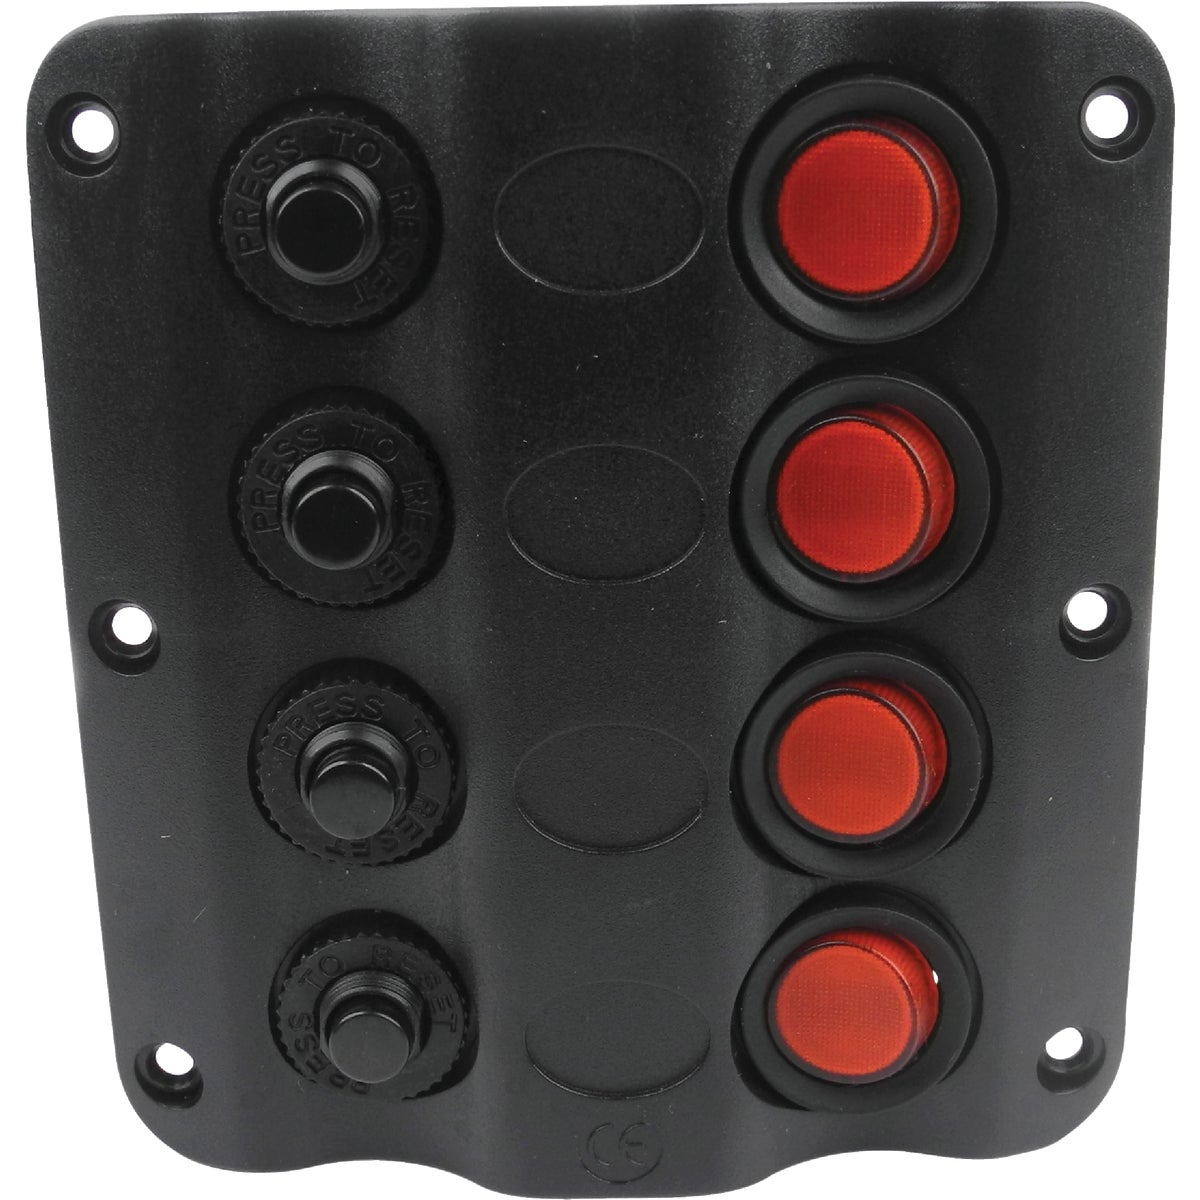 4-GANG LED SWITCH PANEL - 12321 by Seachoice Prod